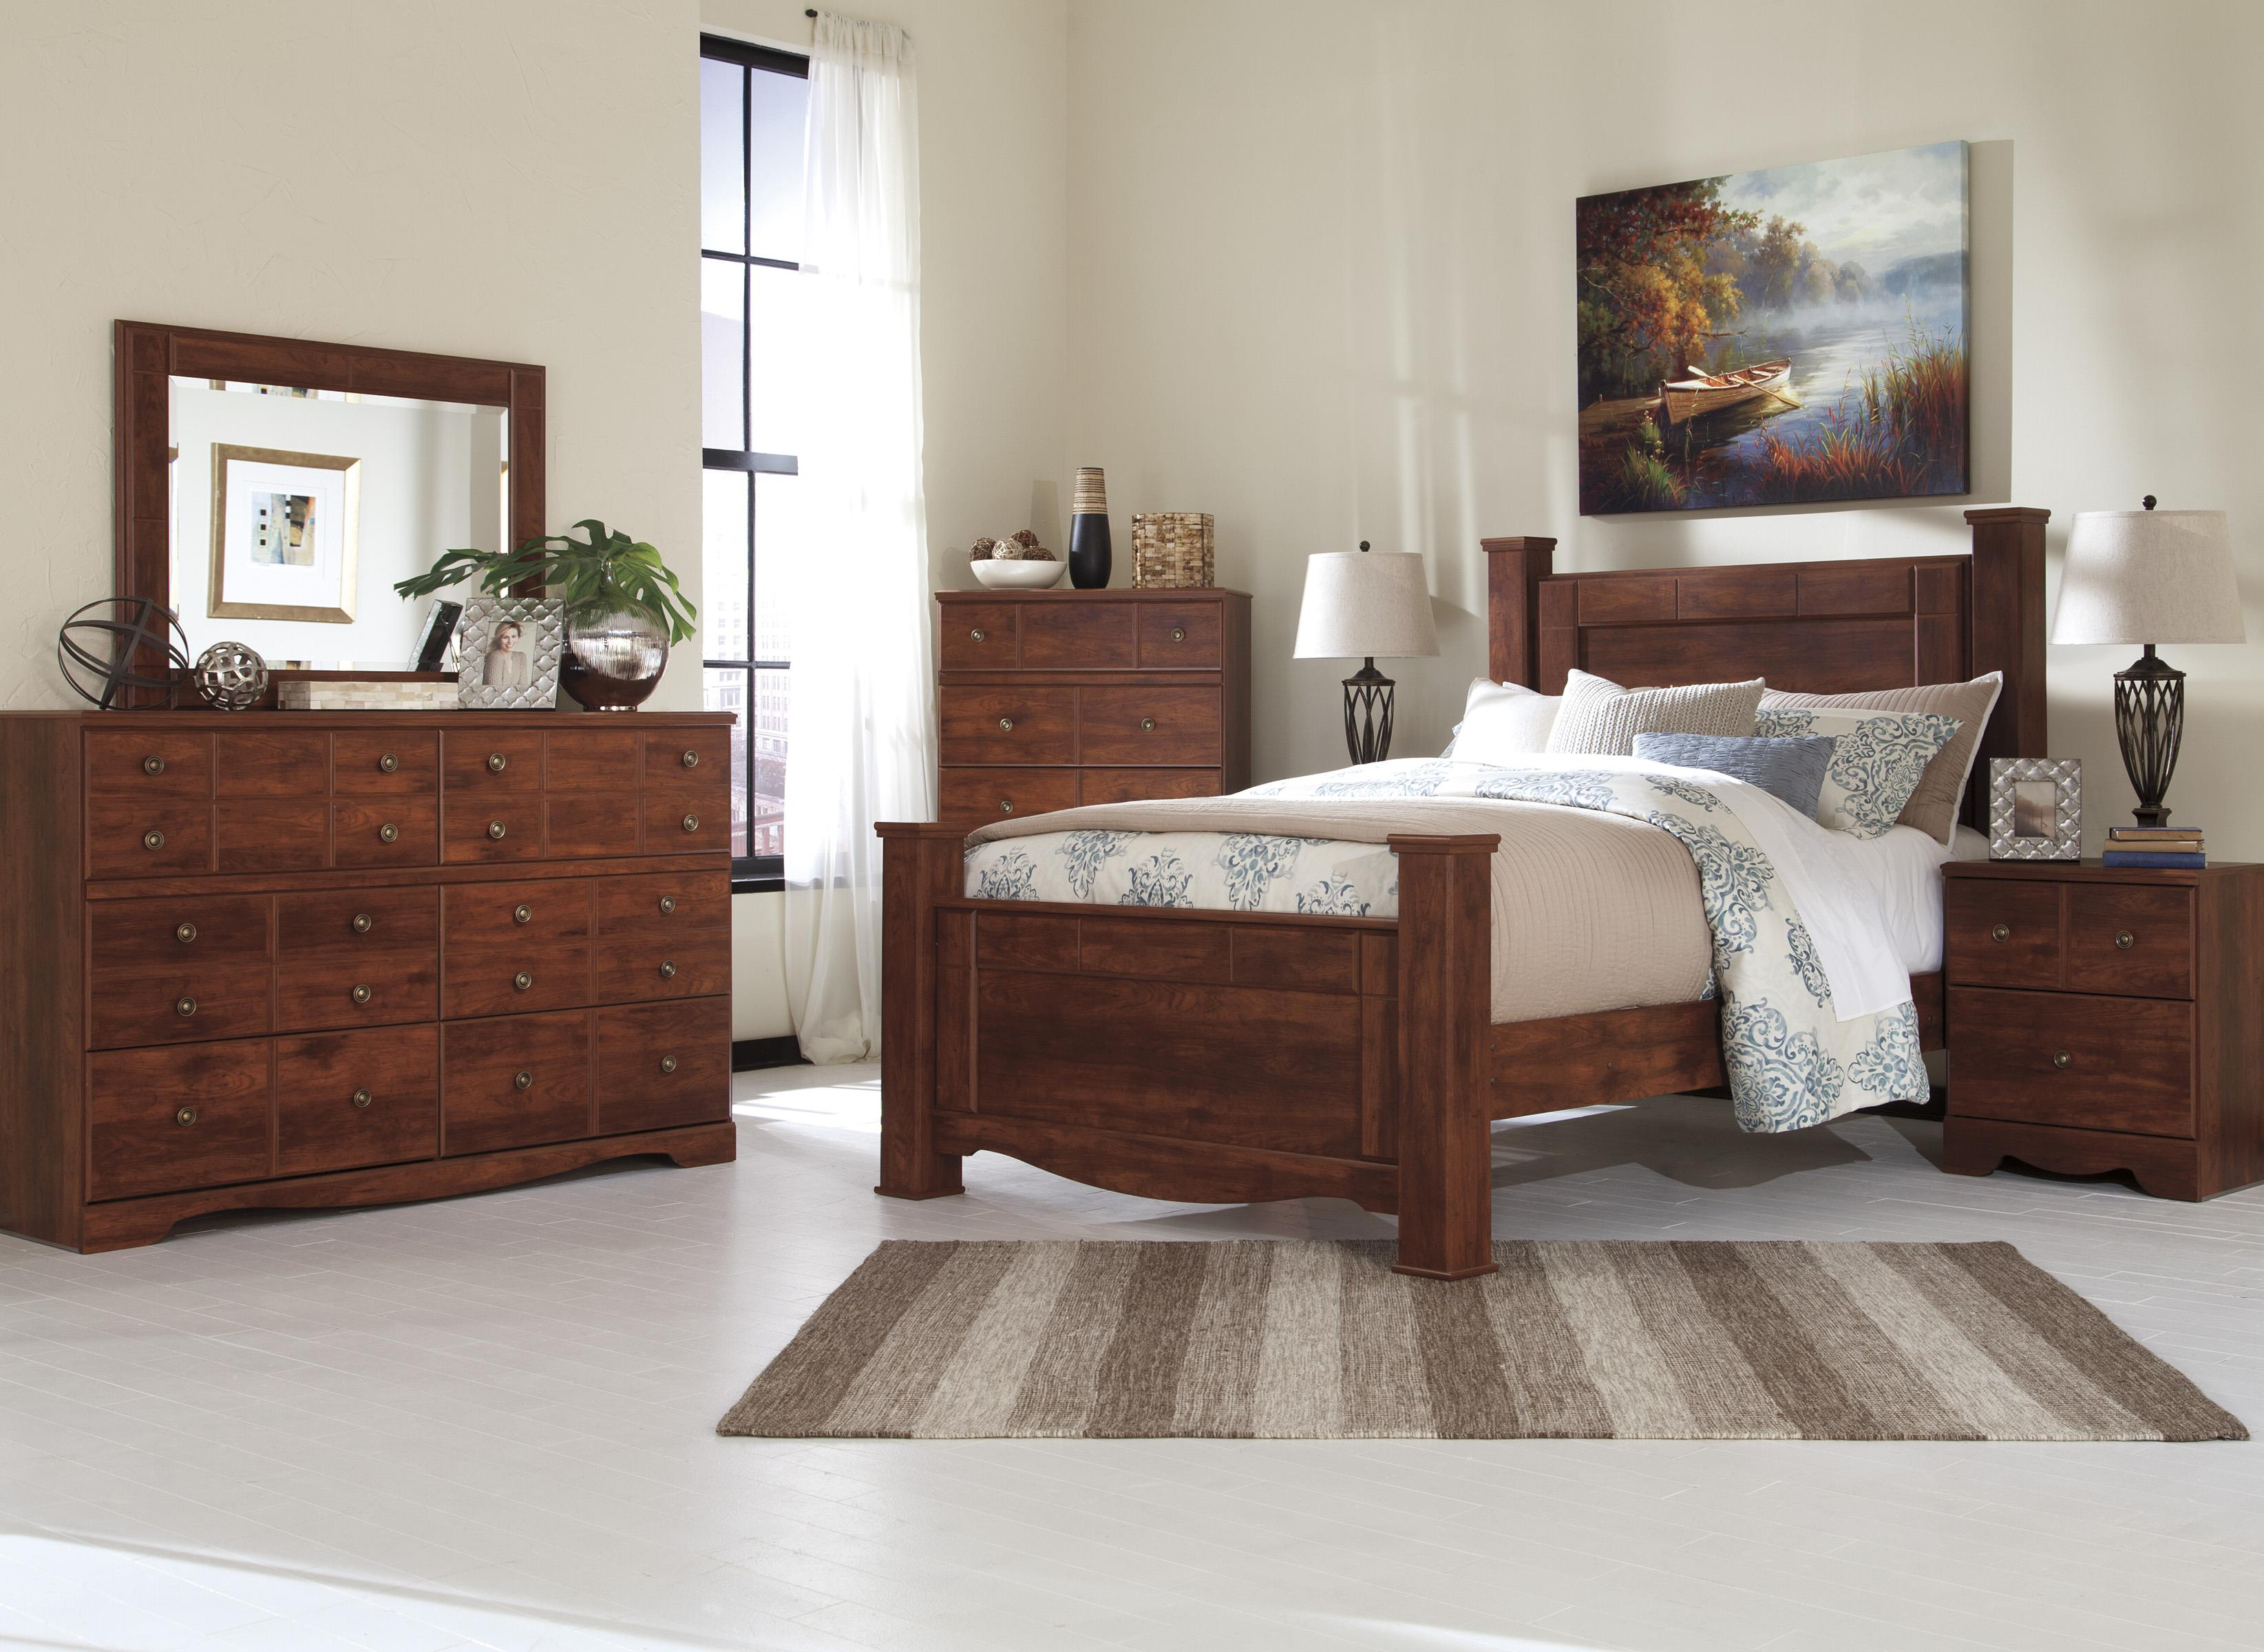 Signature Design by Ashley Brittberg Queen Bedroom Group - Item Number: B265 Q Bedroom Group 1